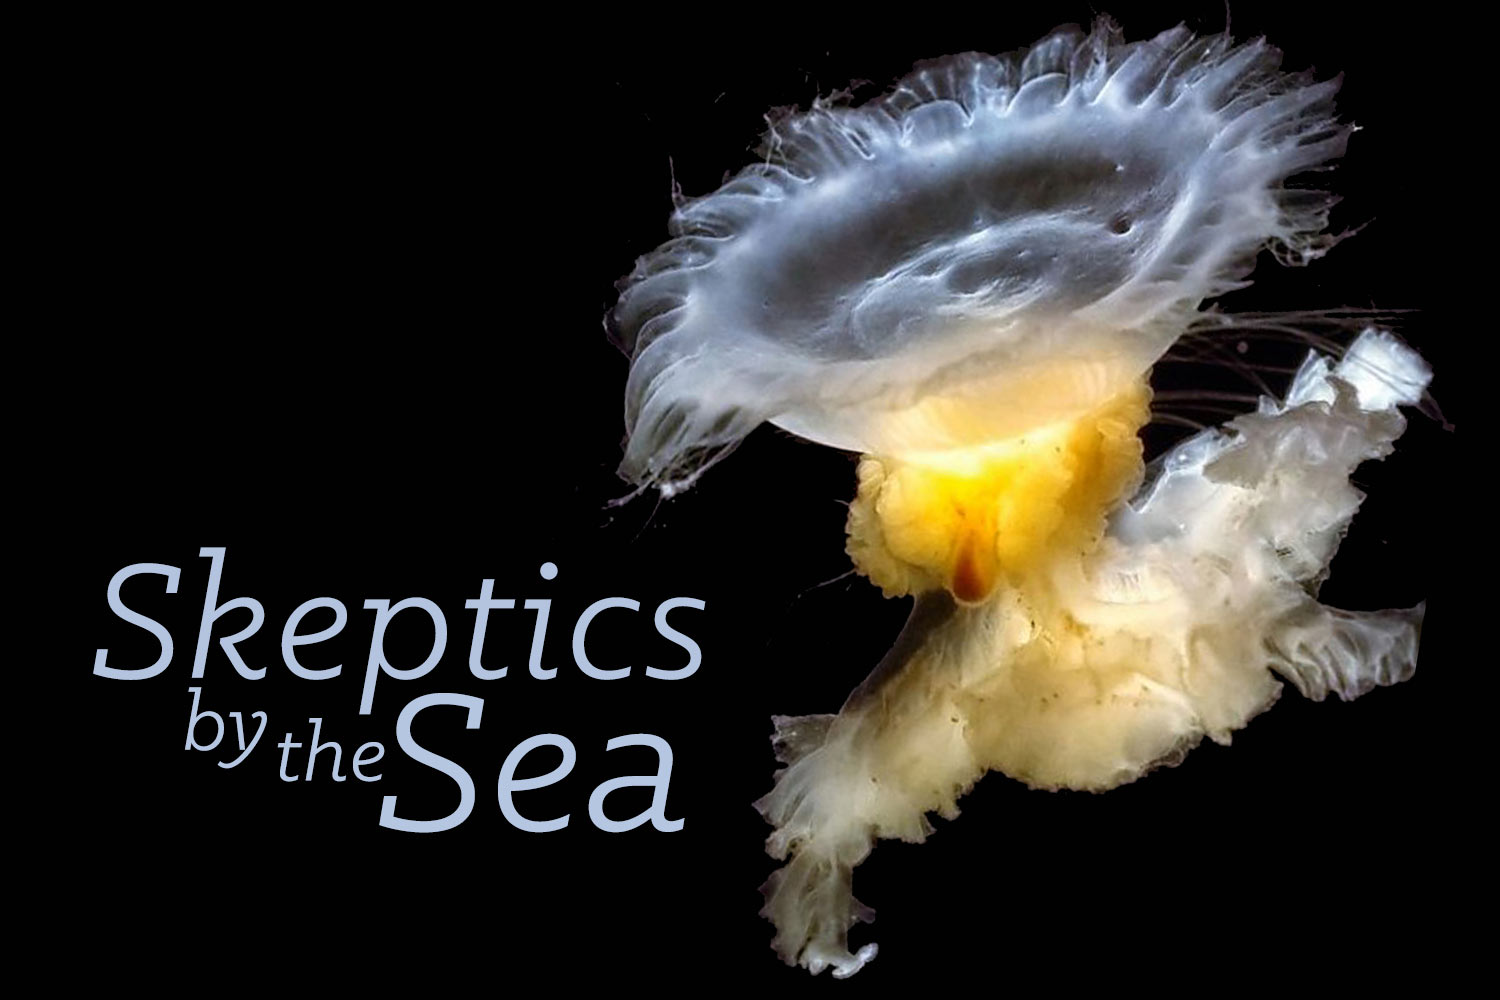 Join us October 11, 2015 for Skeptics by the Sea: Sea lions, dolphins, and whales! Oh my!